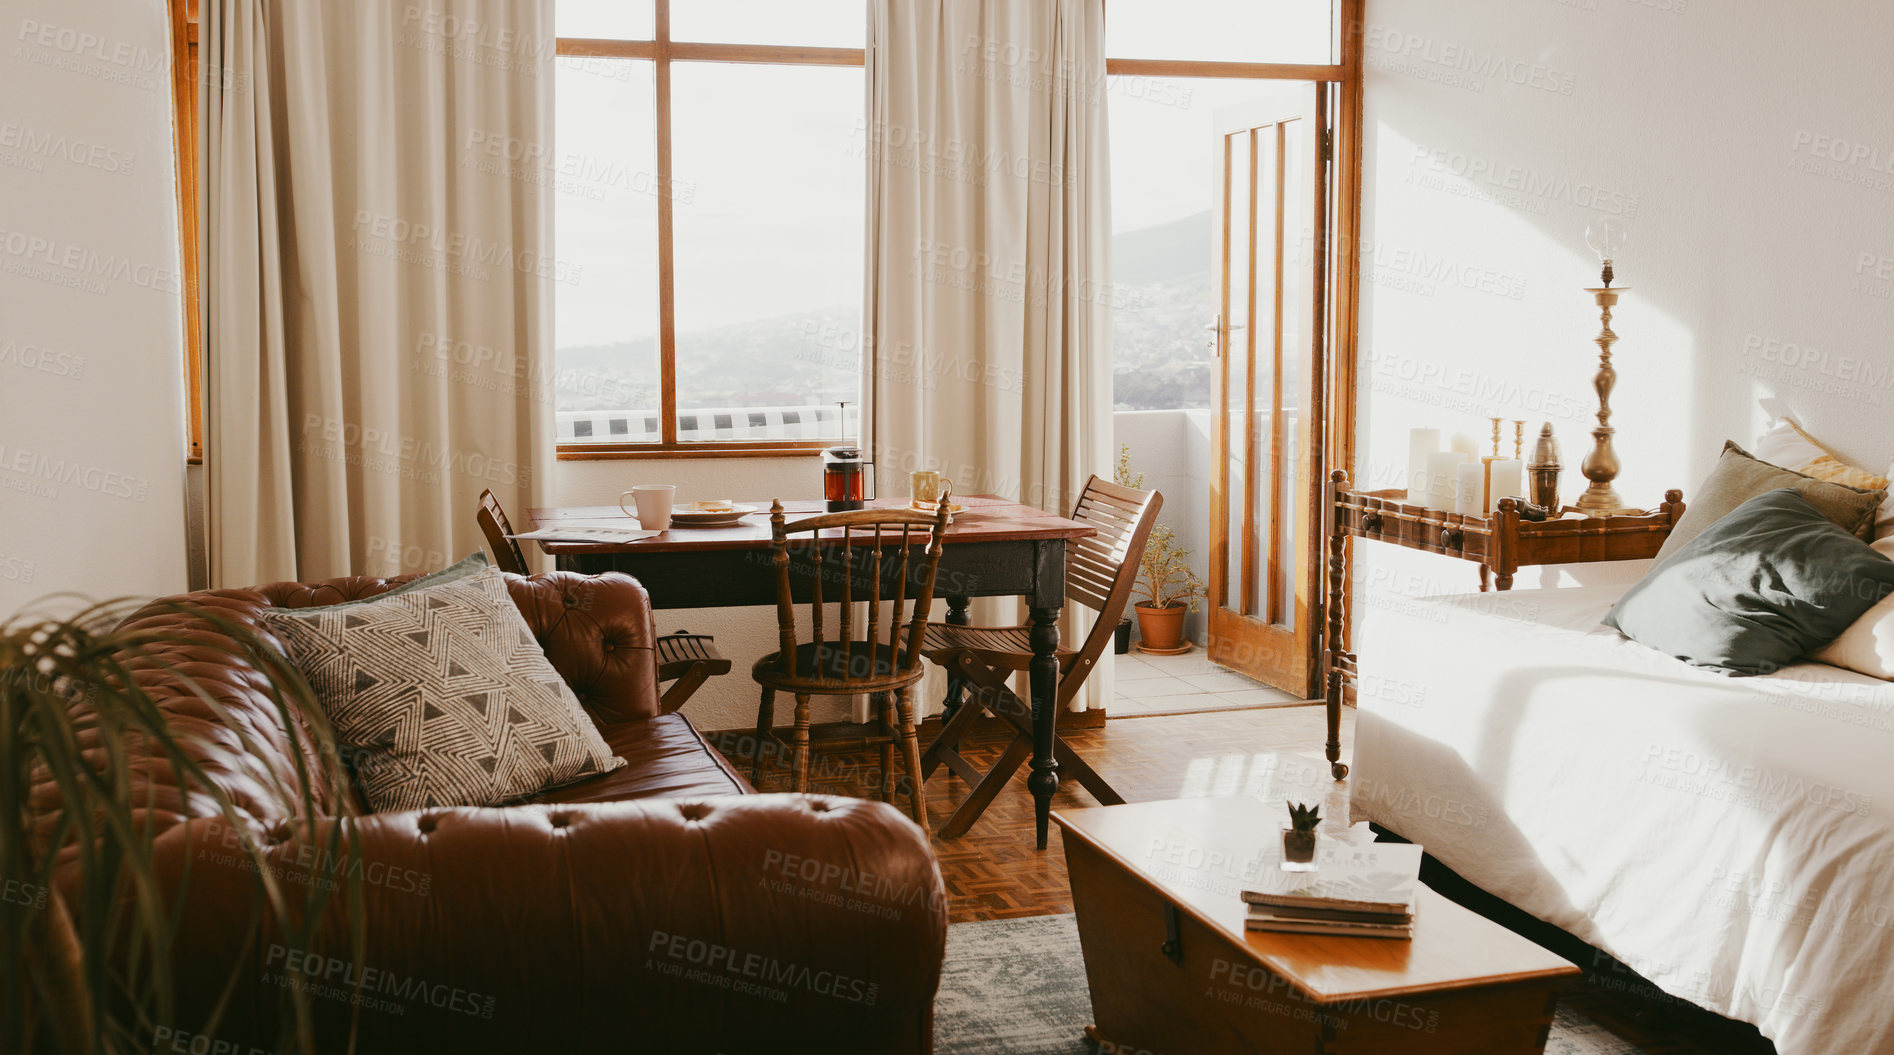 Buy stock photo Still life shot of a rustic apartment